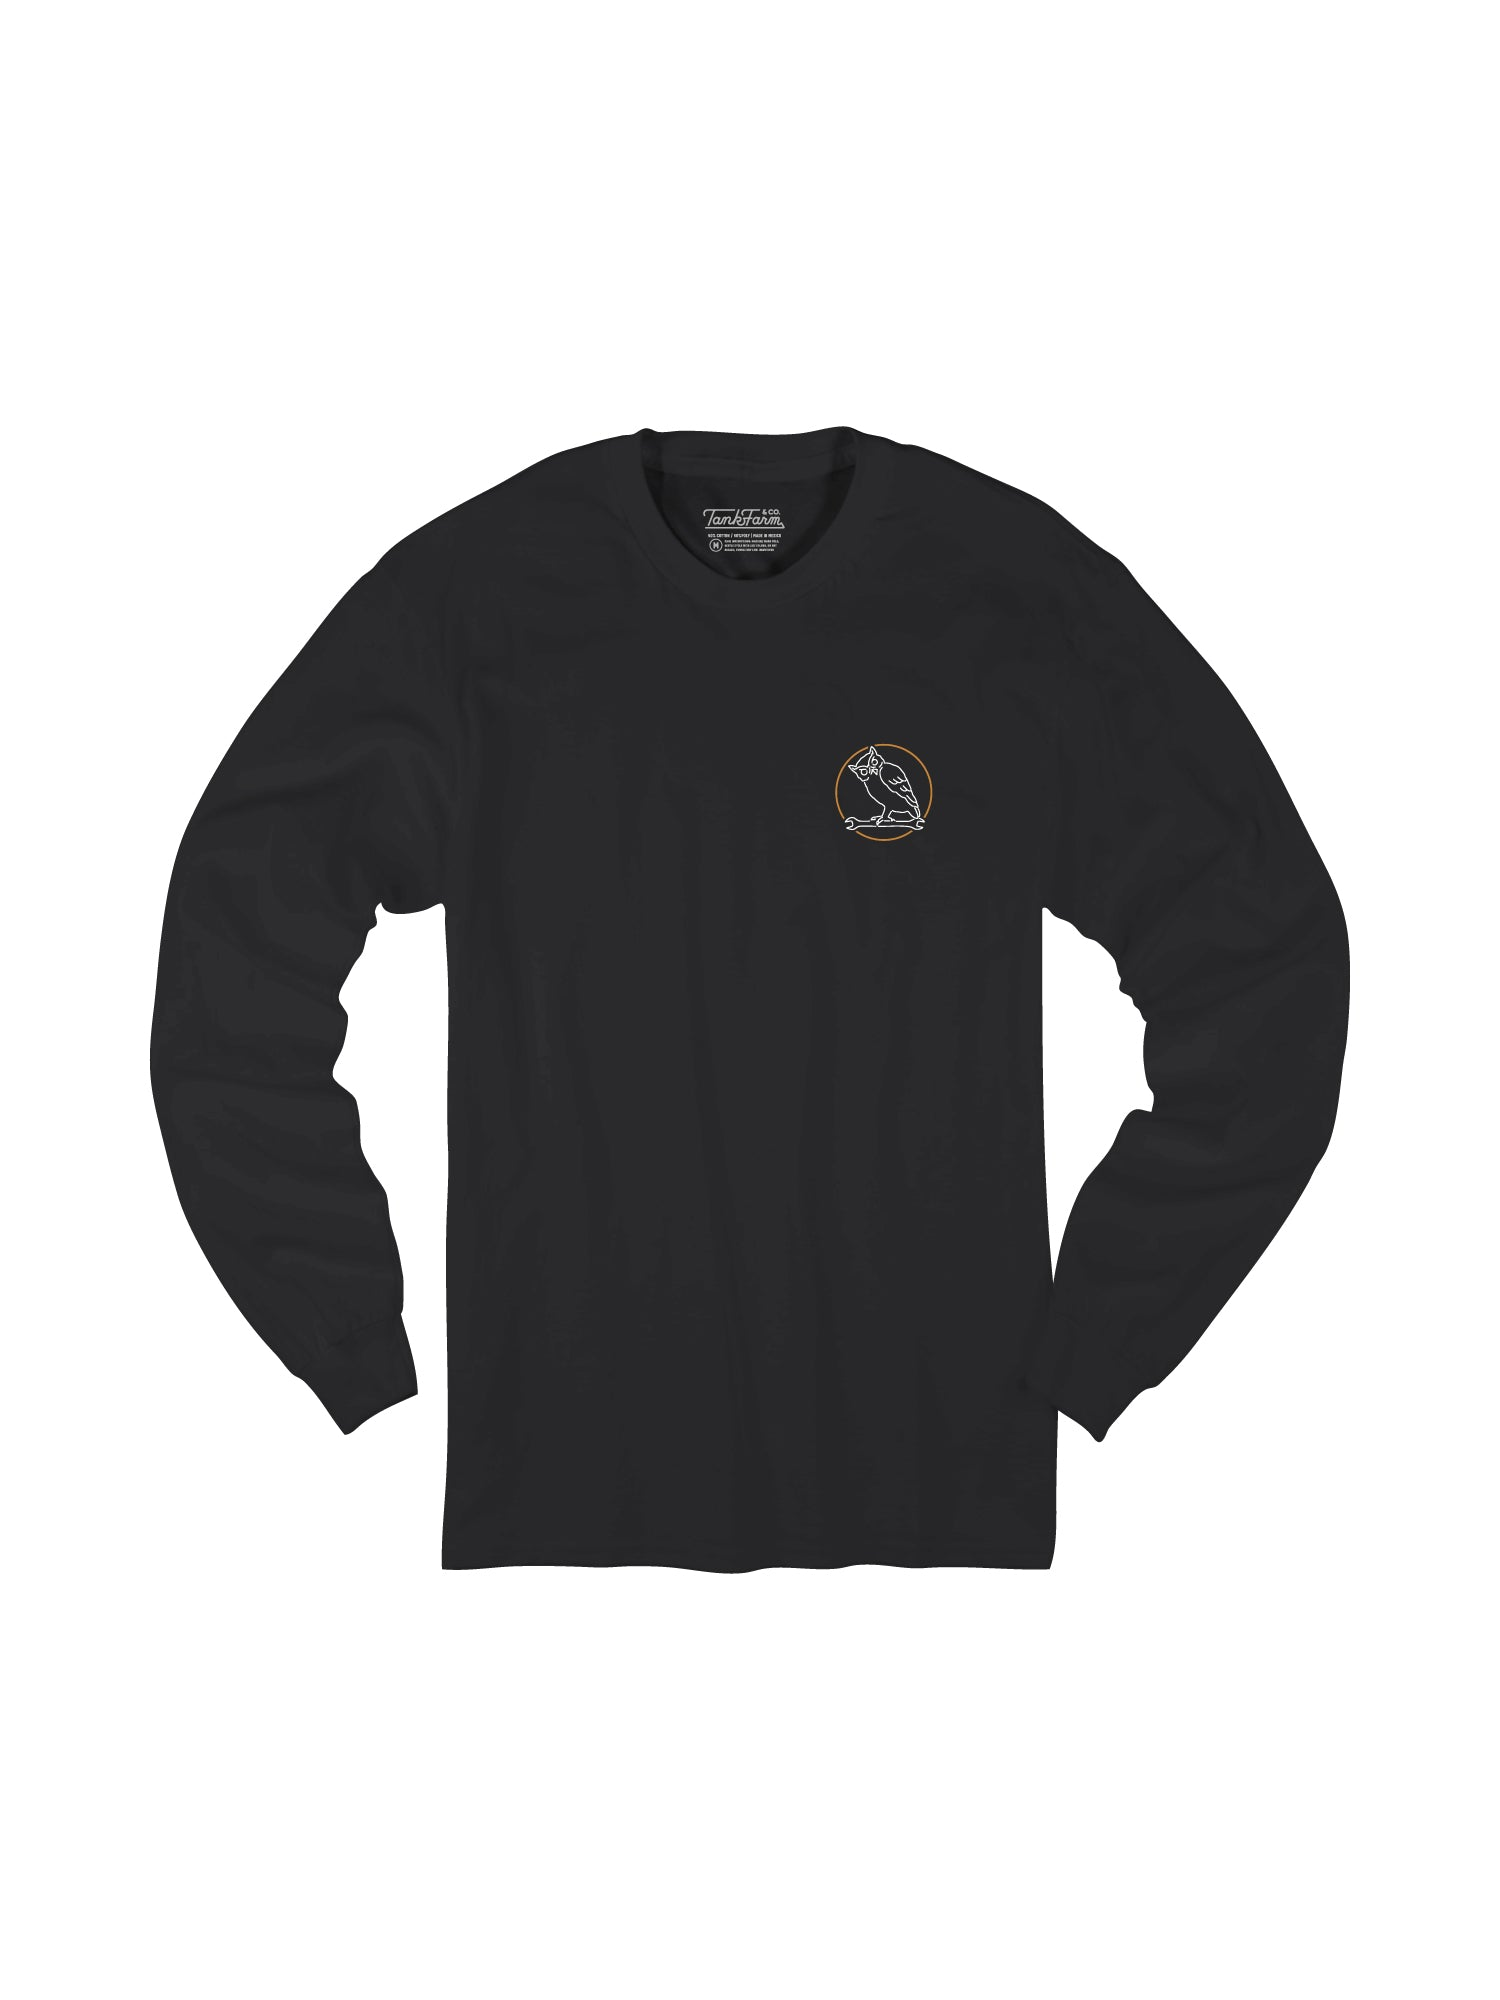 NIGHT CREW STAMP L/S - BLACK/GOLD - Tankfarm & Co.